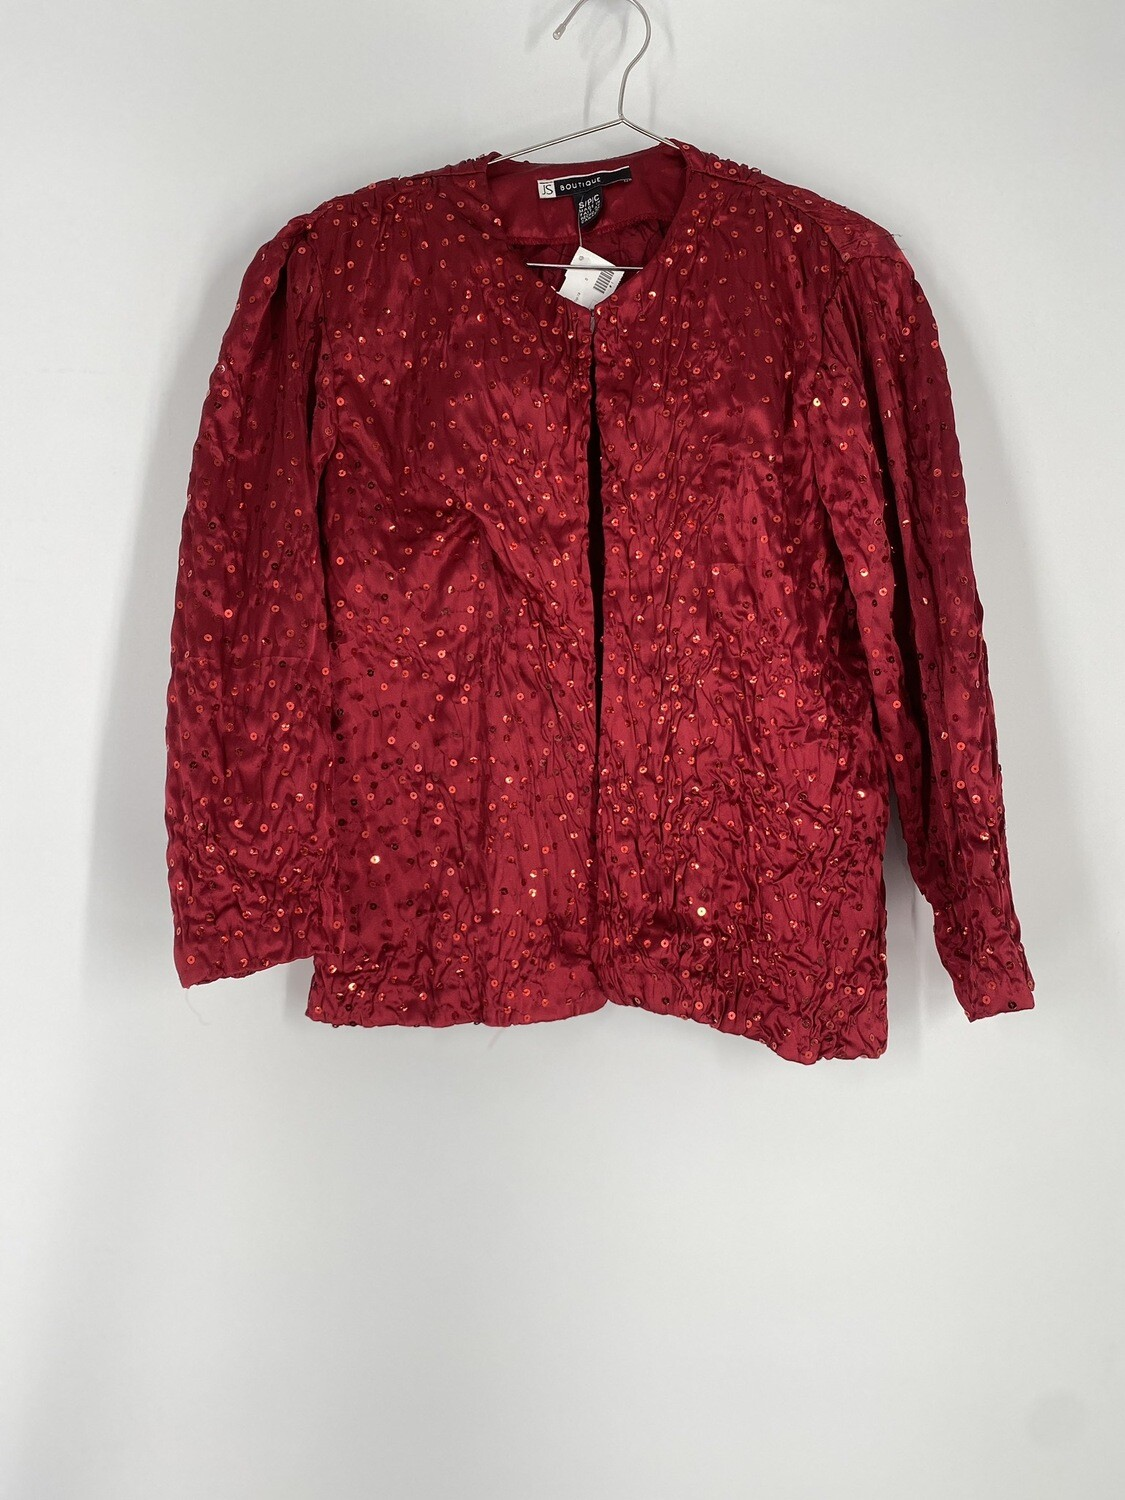 JS Boutique Red Sequin 3/4 Sleeve Top Size S